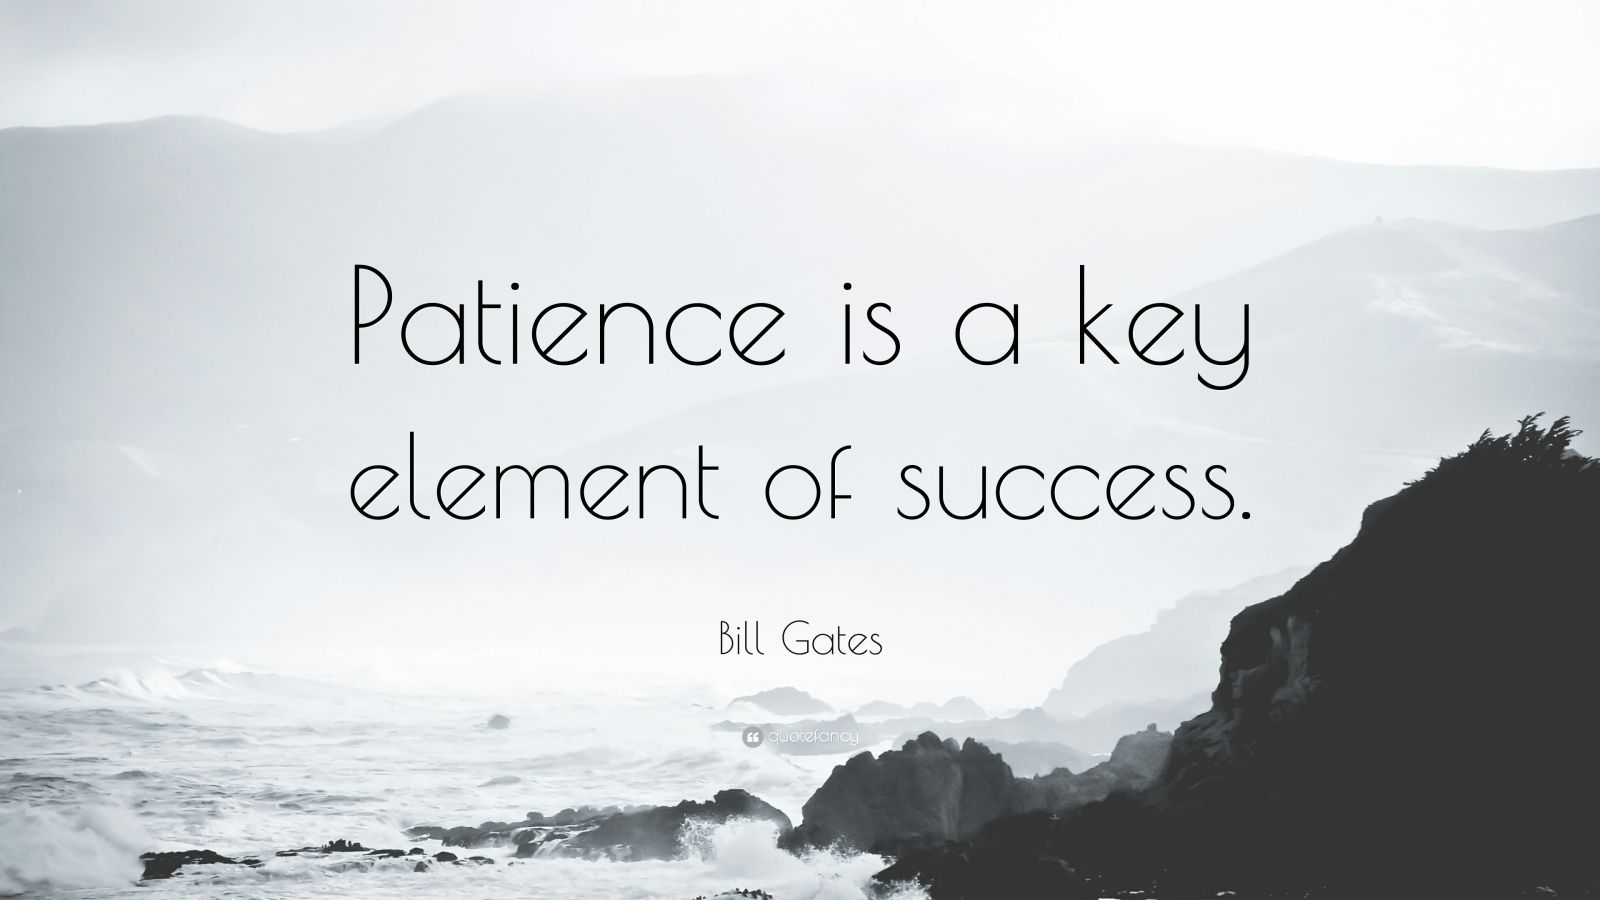 patience is the key to success essay   accounting dissertationpatience is the key to success essay